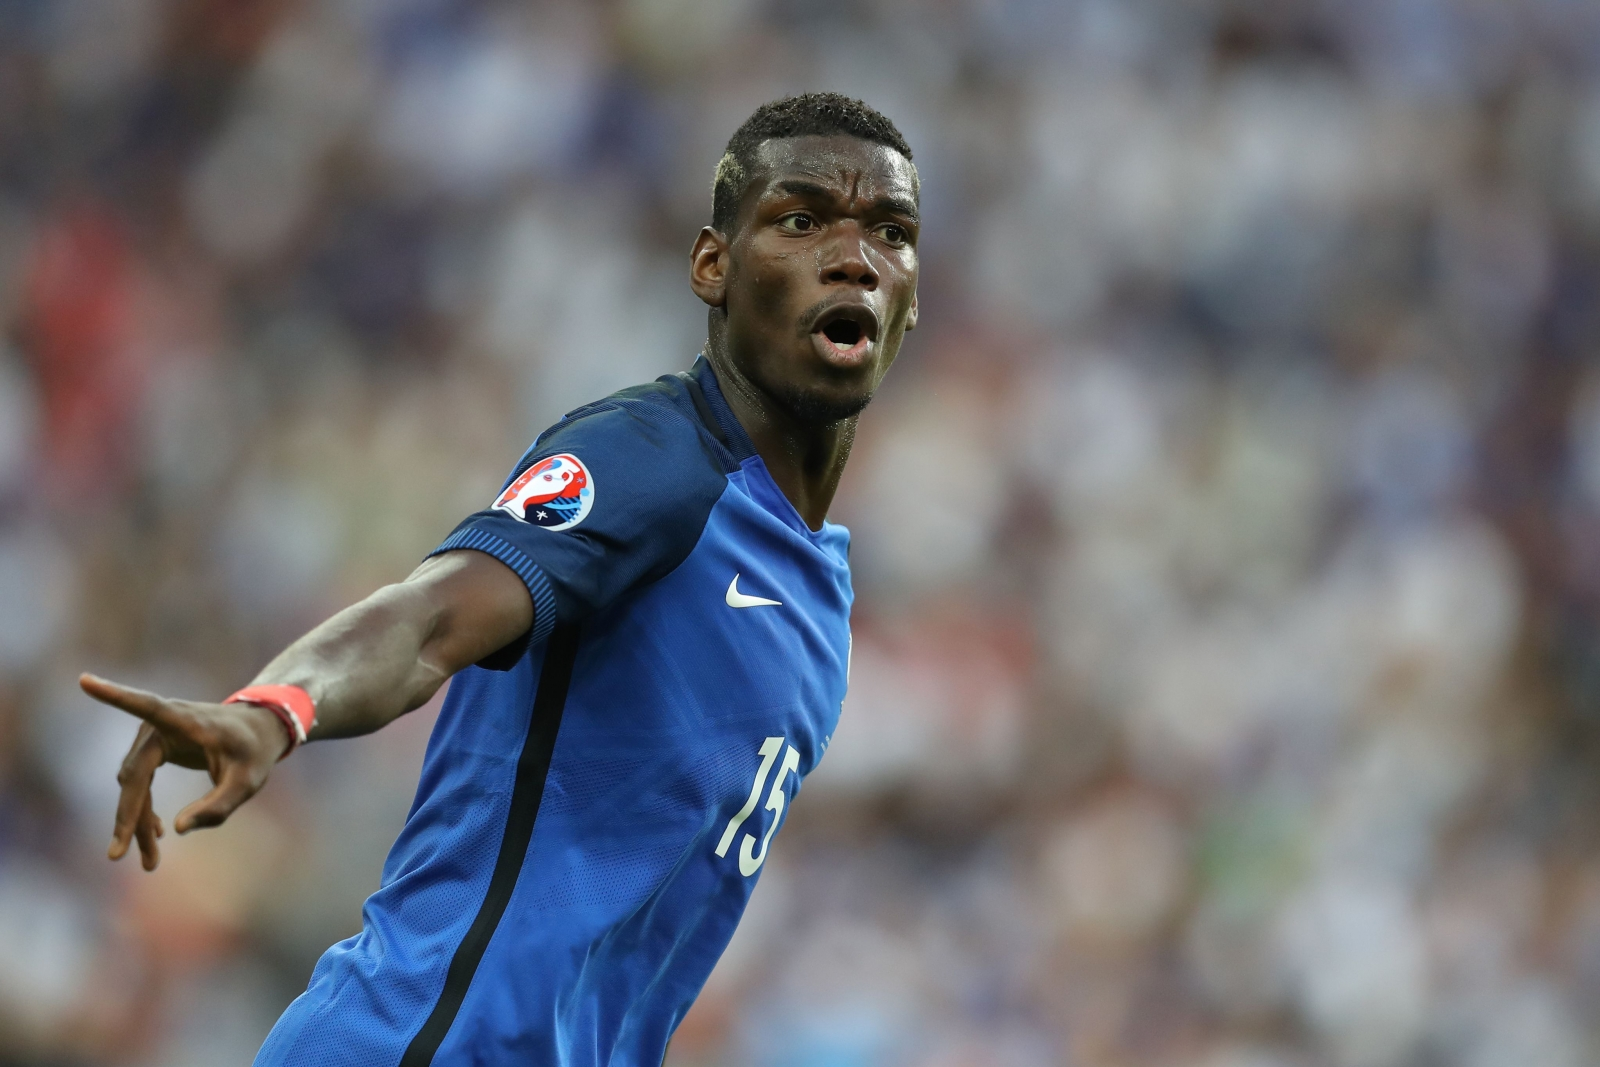 Paul Pogba: Manchester United Transfer News: Paul Pogba To Return To